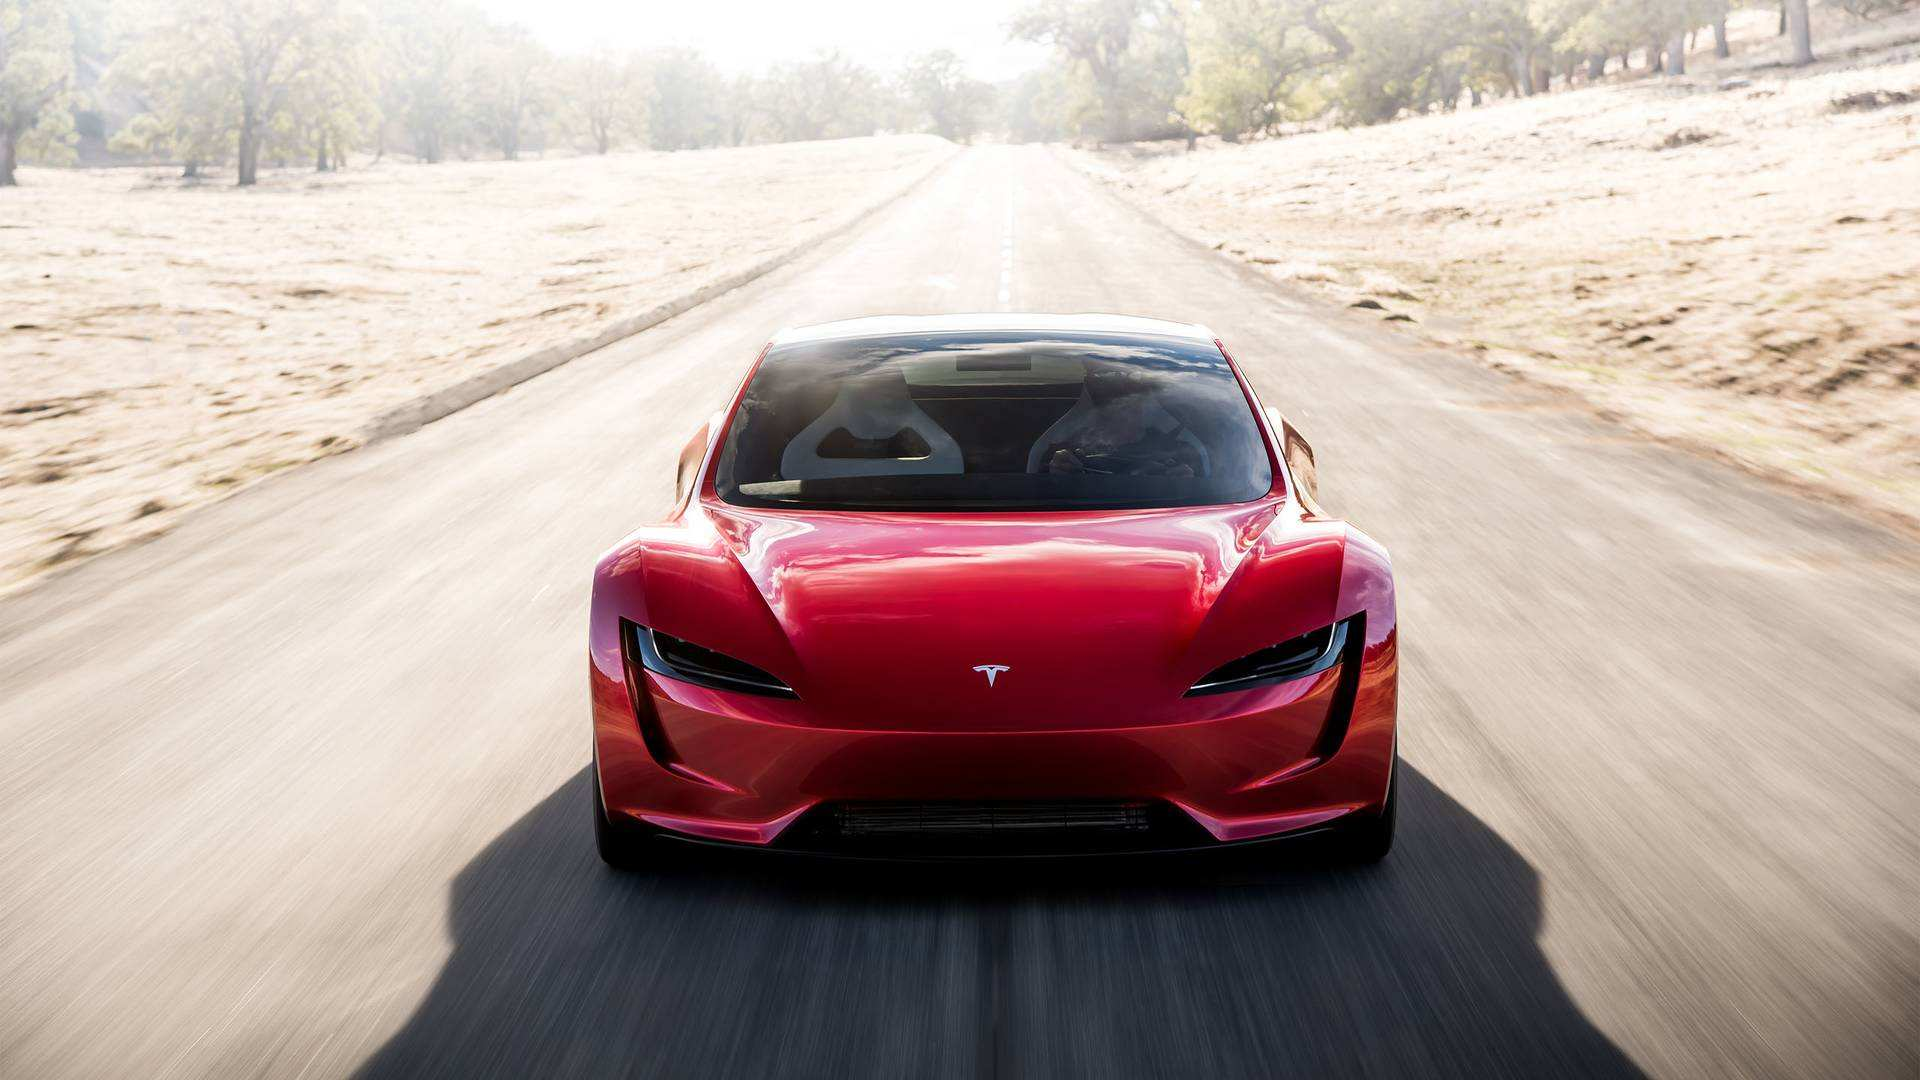 81 Concept of 2020 Tesla Roadster Torque Overview by 2020 Tesla Roadster Torque